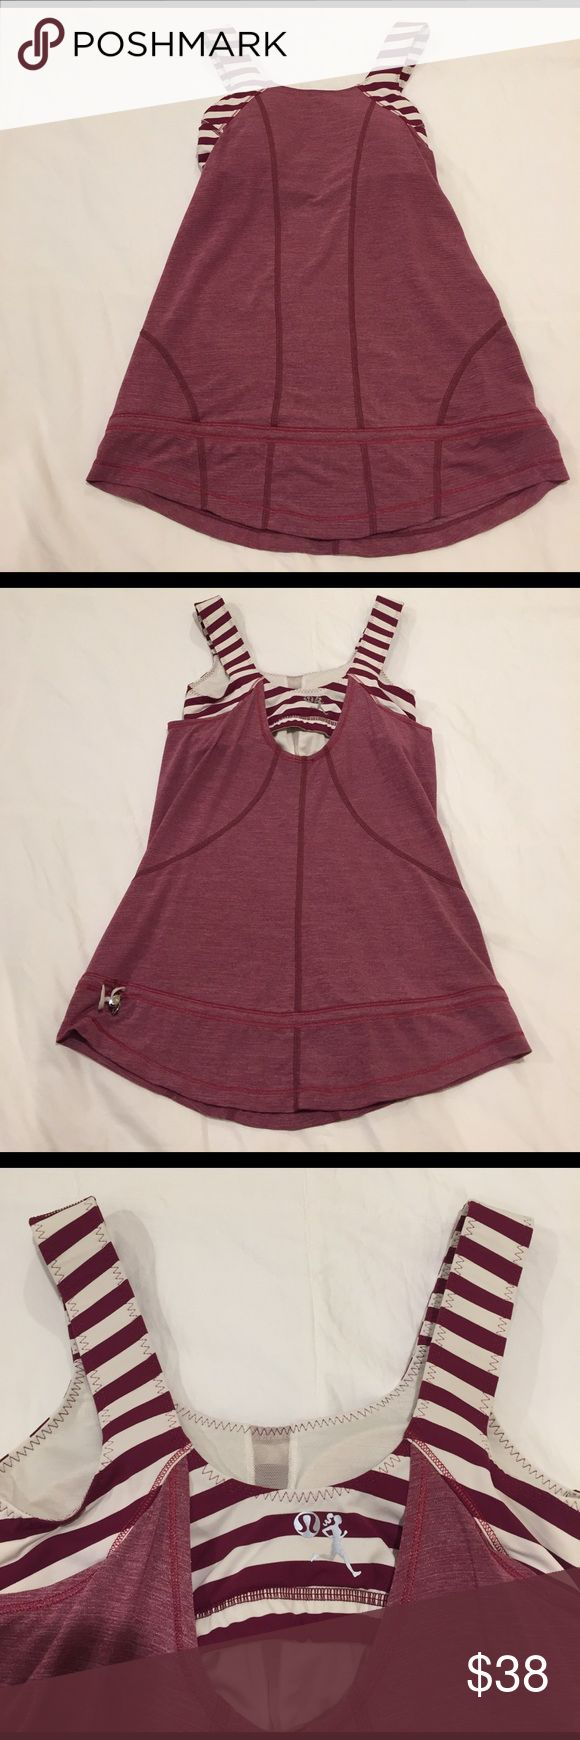 Own 100's of Lulu and not enough closet space! Lululemon workout tank in size 4. Featuring an adjustable drawstring at the waist. Wear it higher up at the waist, or leave it open down by the hip. Also featuring a shelf bra with removable cups included! Only wore a few times and in excellent condition! lululemon athletica Tops Tank Tops